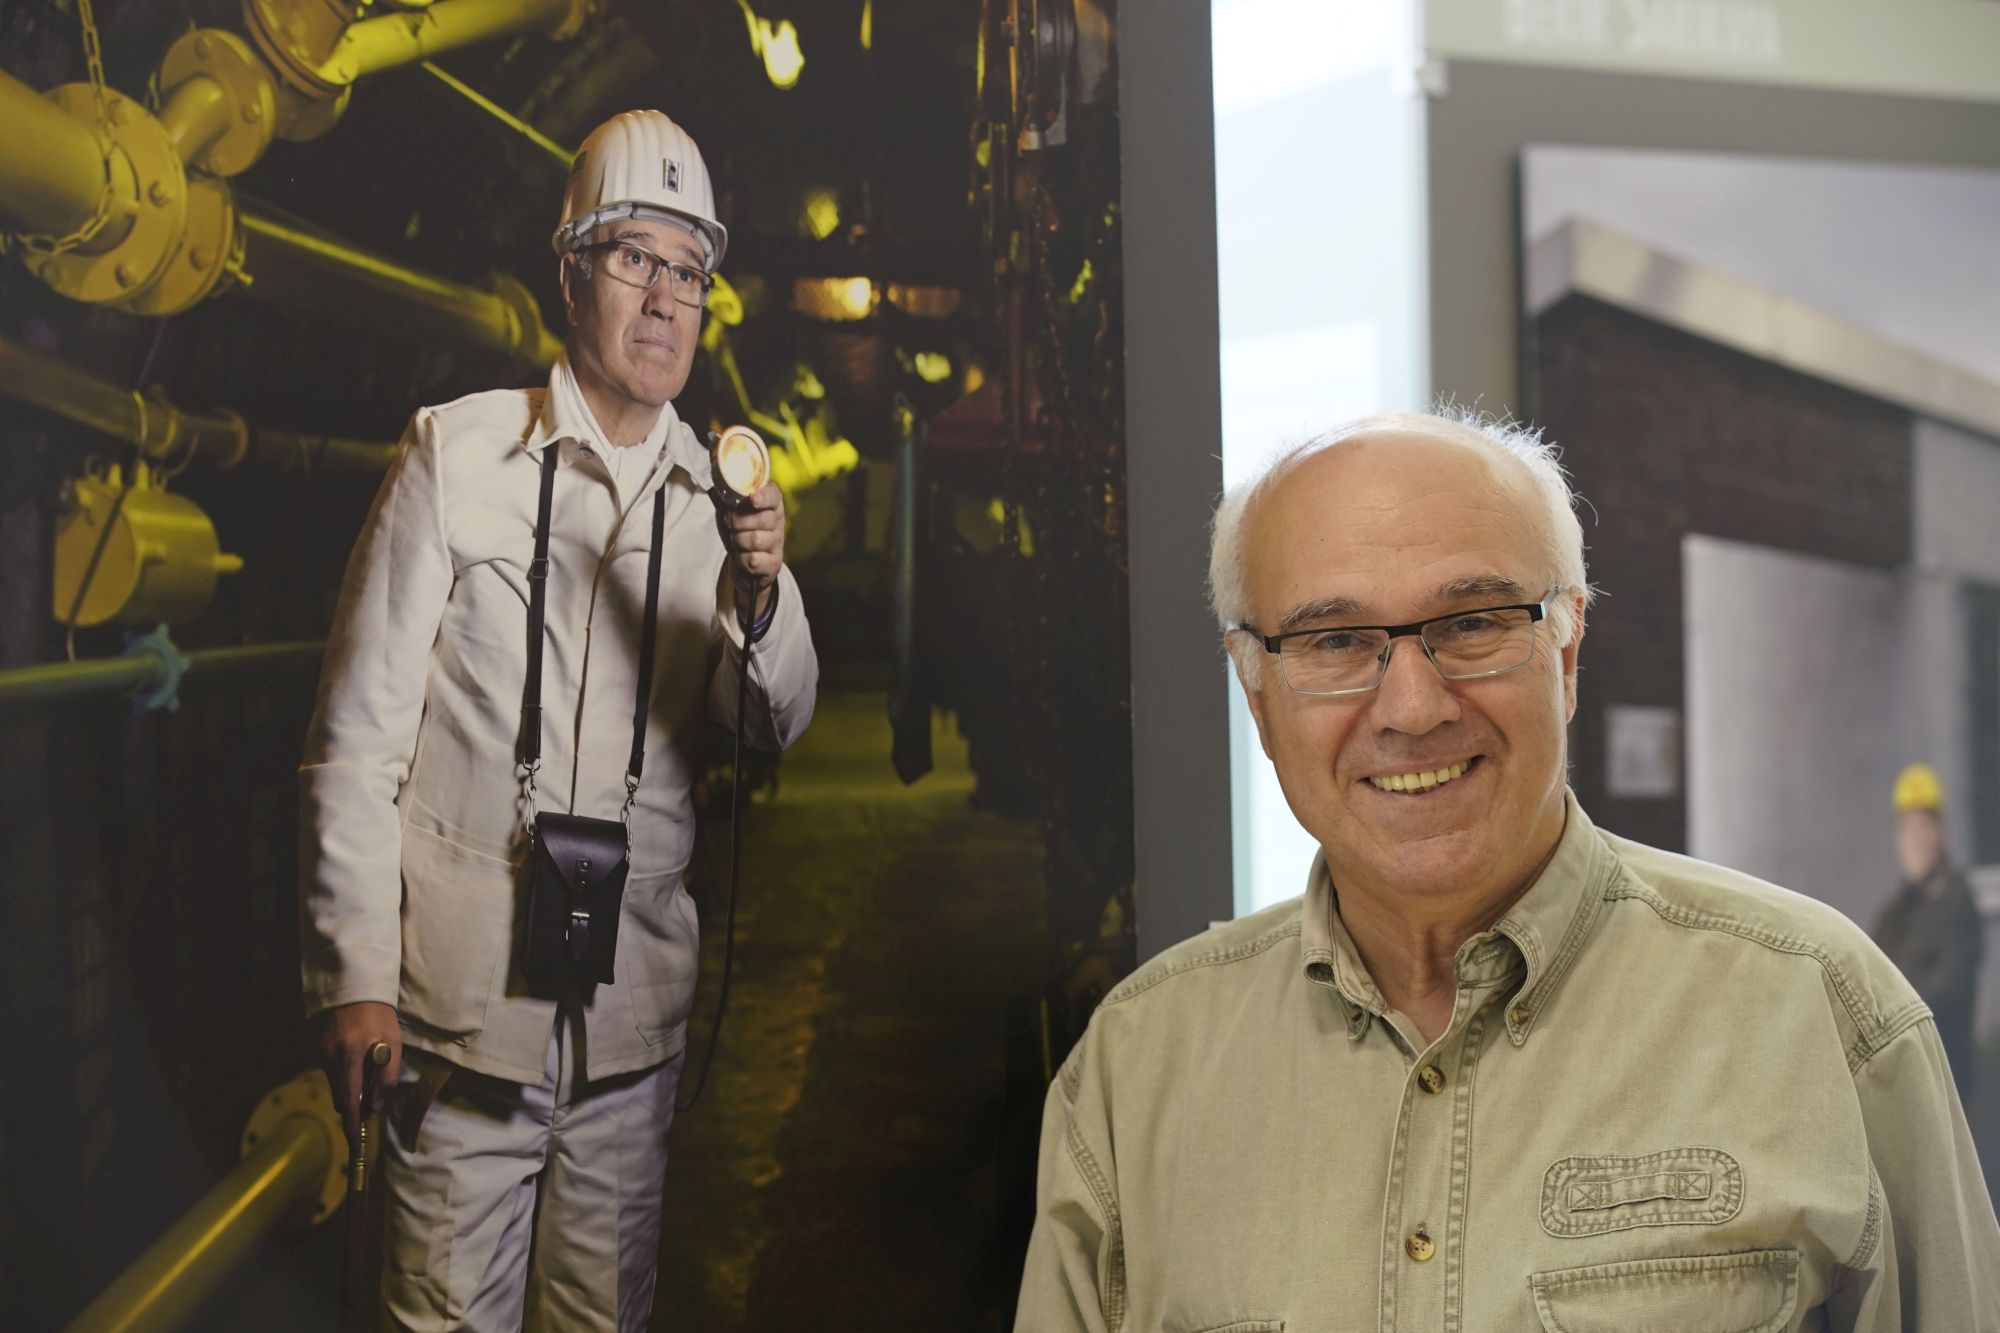 An older man stands in front of a life-size picture that shows himself as a miner. The photo is part of a travelling exhibition which was shown on the Senior Citizens Day